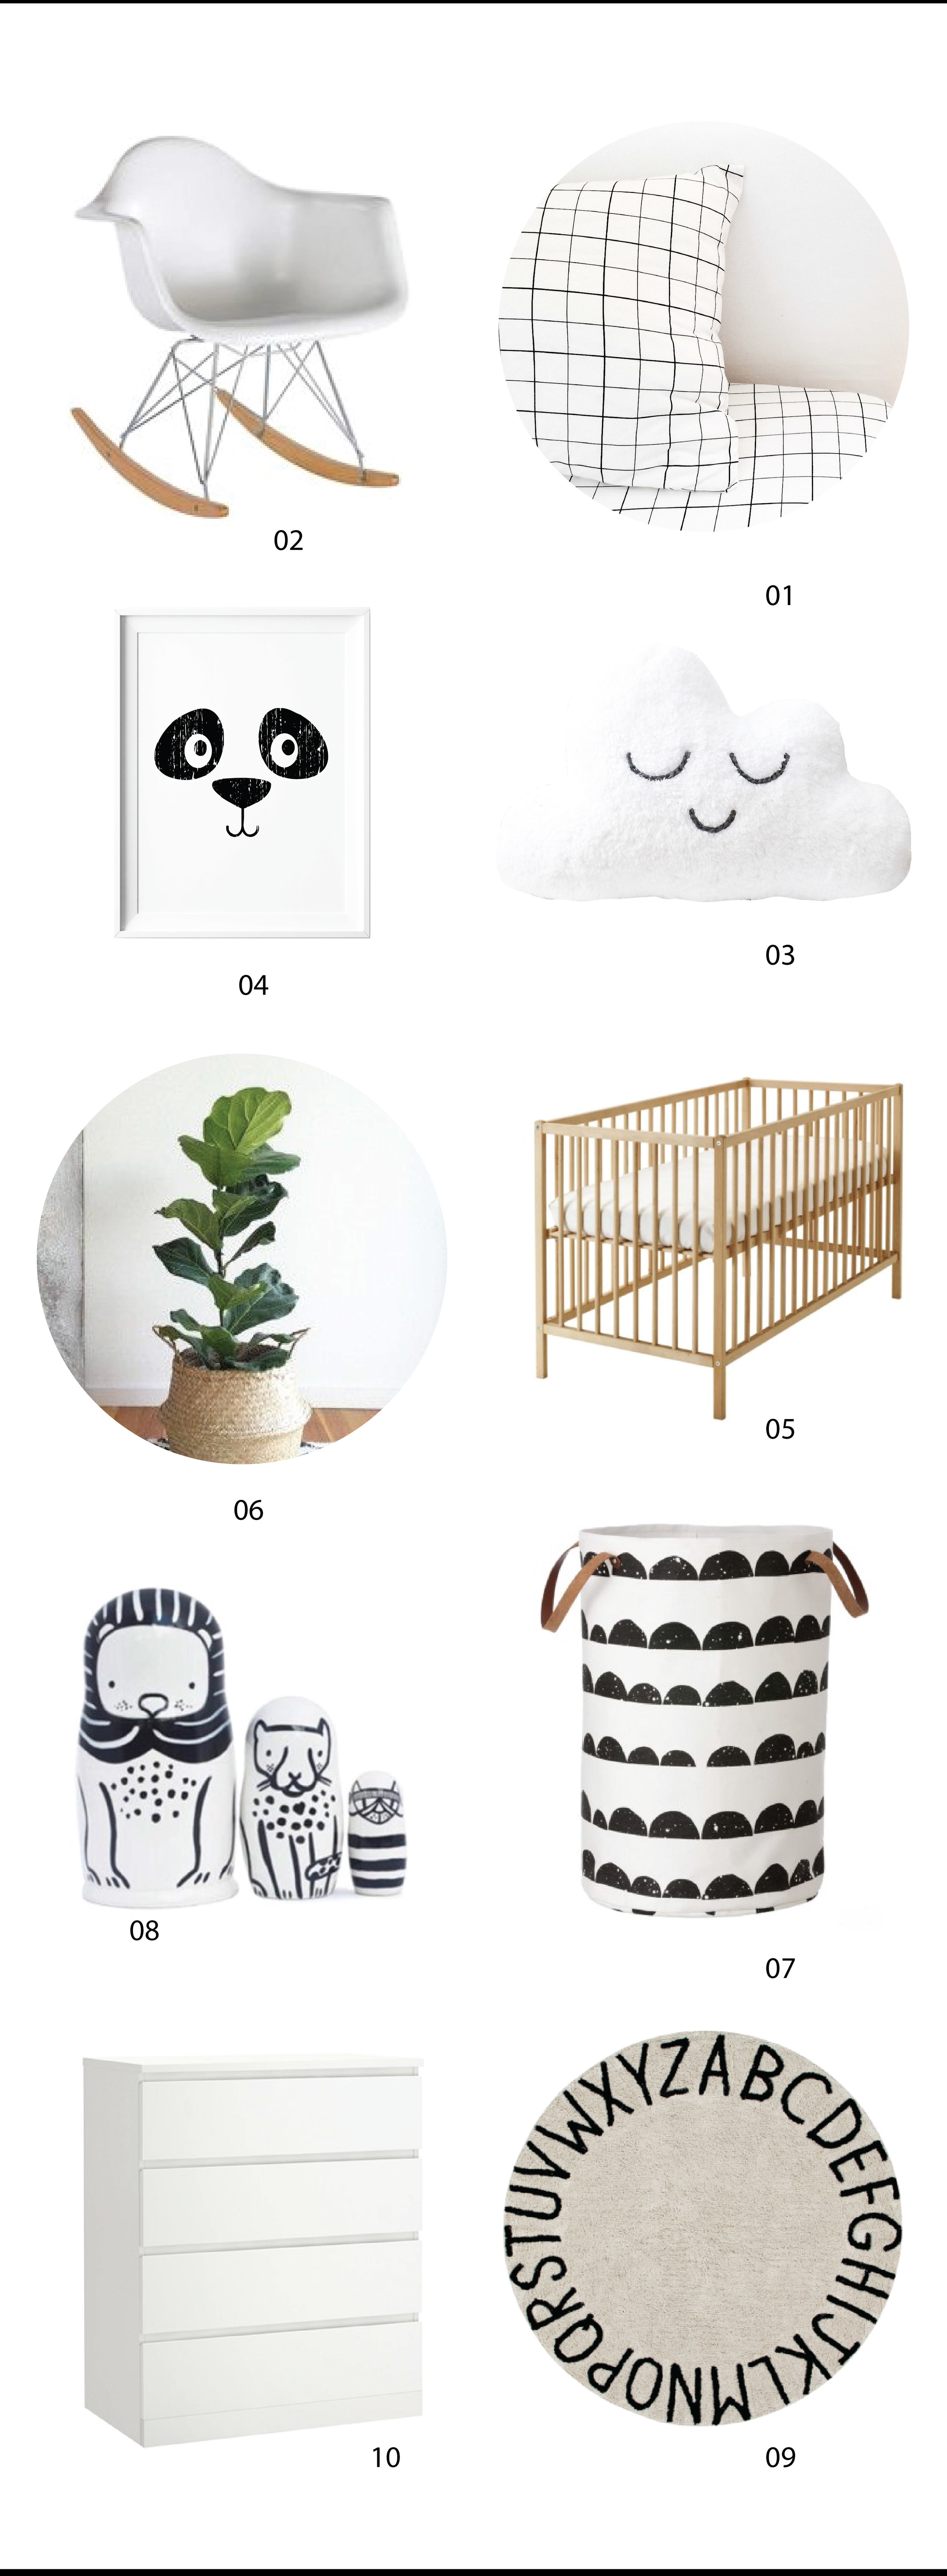 minimalist nursery essentials by Katya Malkin 3-02.jpg